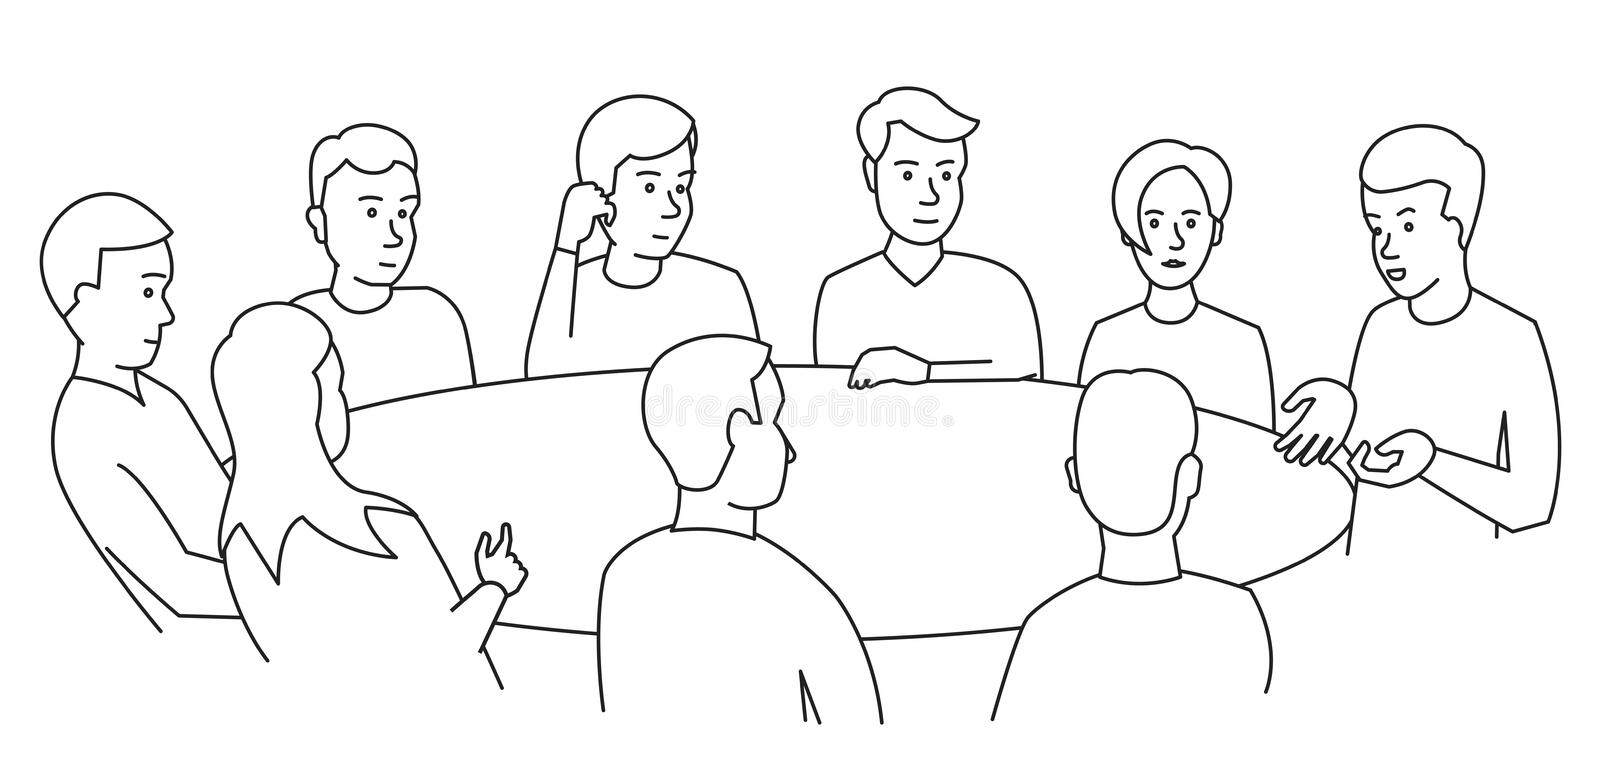 Discussion Round Table Stock Illustrations 1 804 Discussion Round Table Stock Illustrations Vectors Clipart Dreamstime